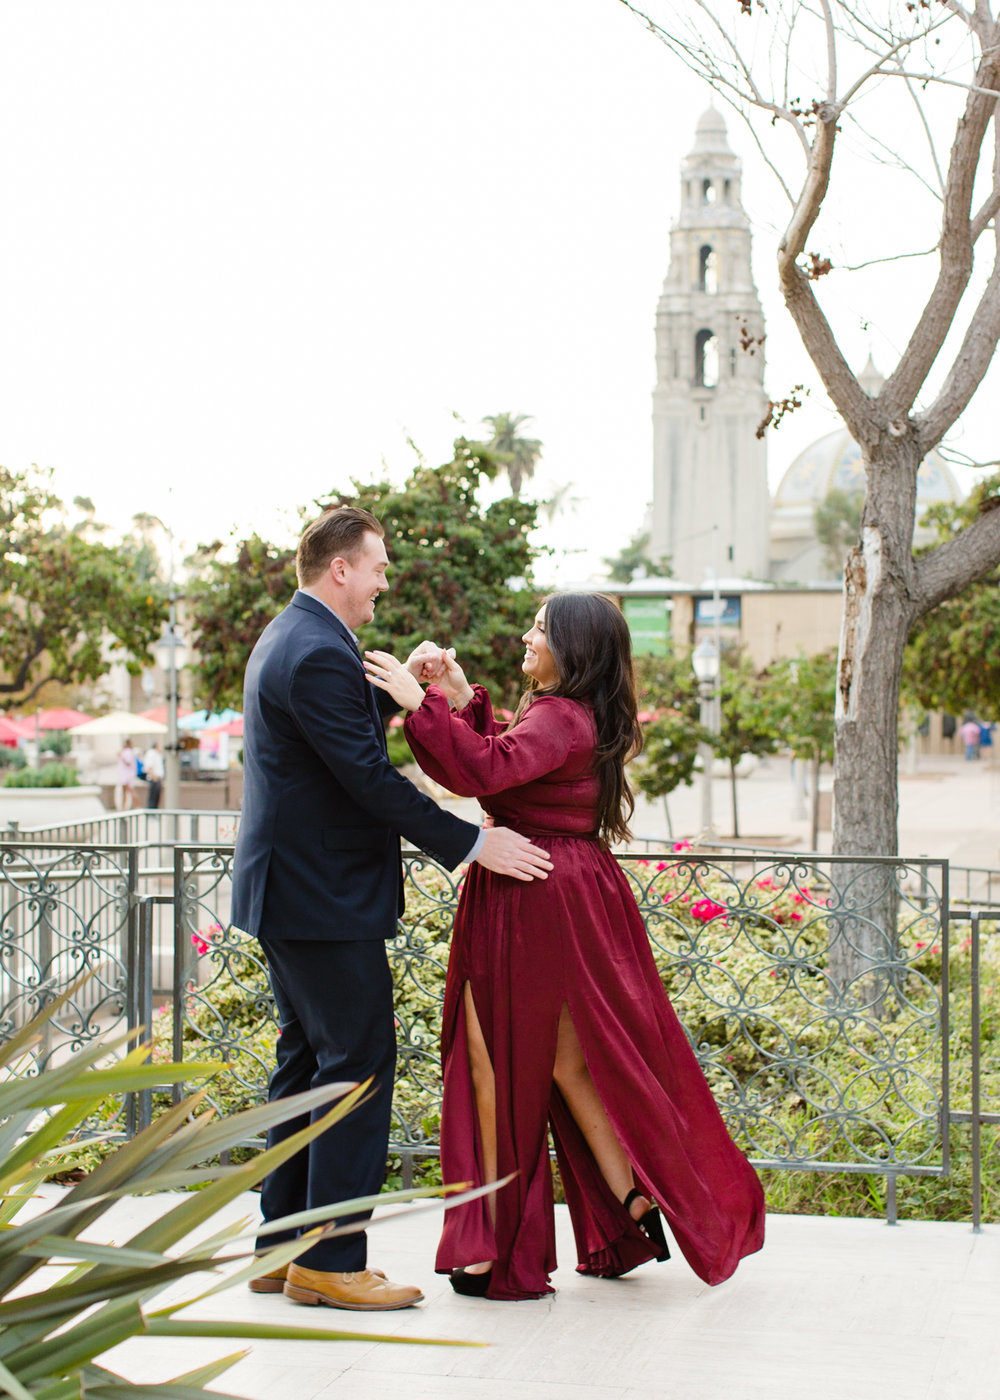 katherine-beth-photography-san-diego-wedding-photographer-san-diego-family-photographer-balboa-park-engagement_008.jpg